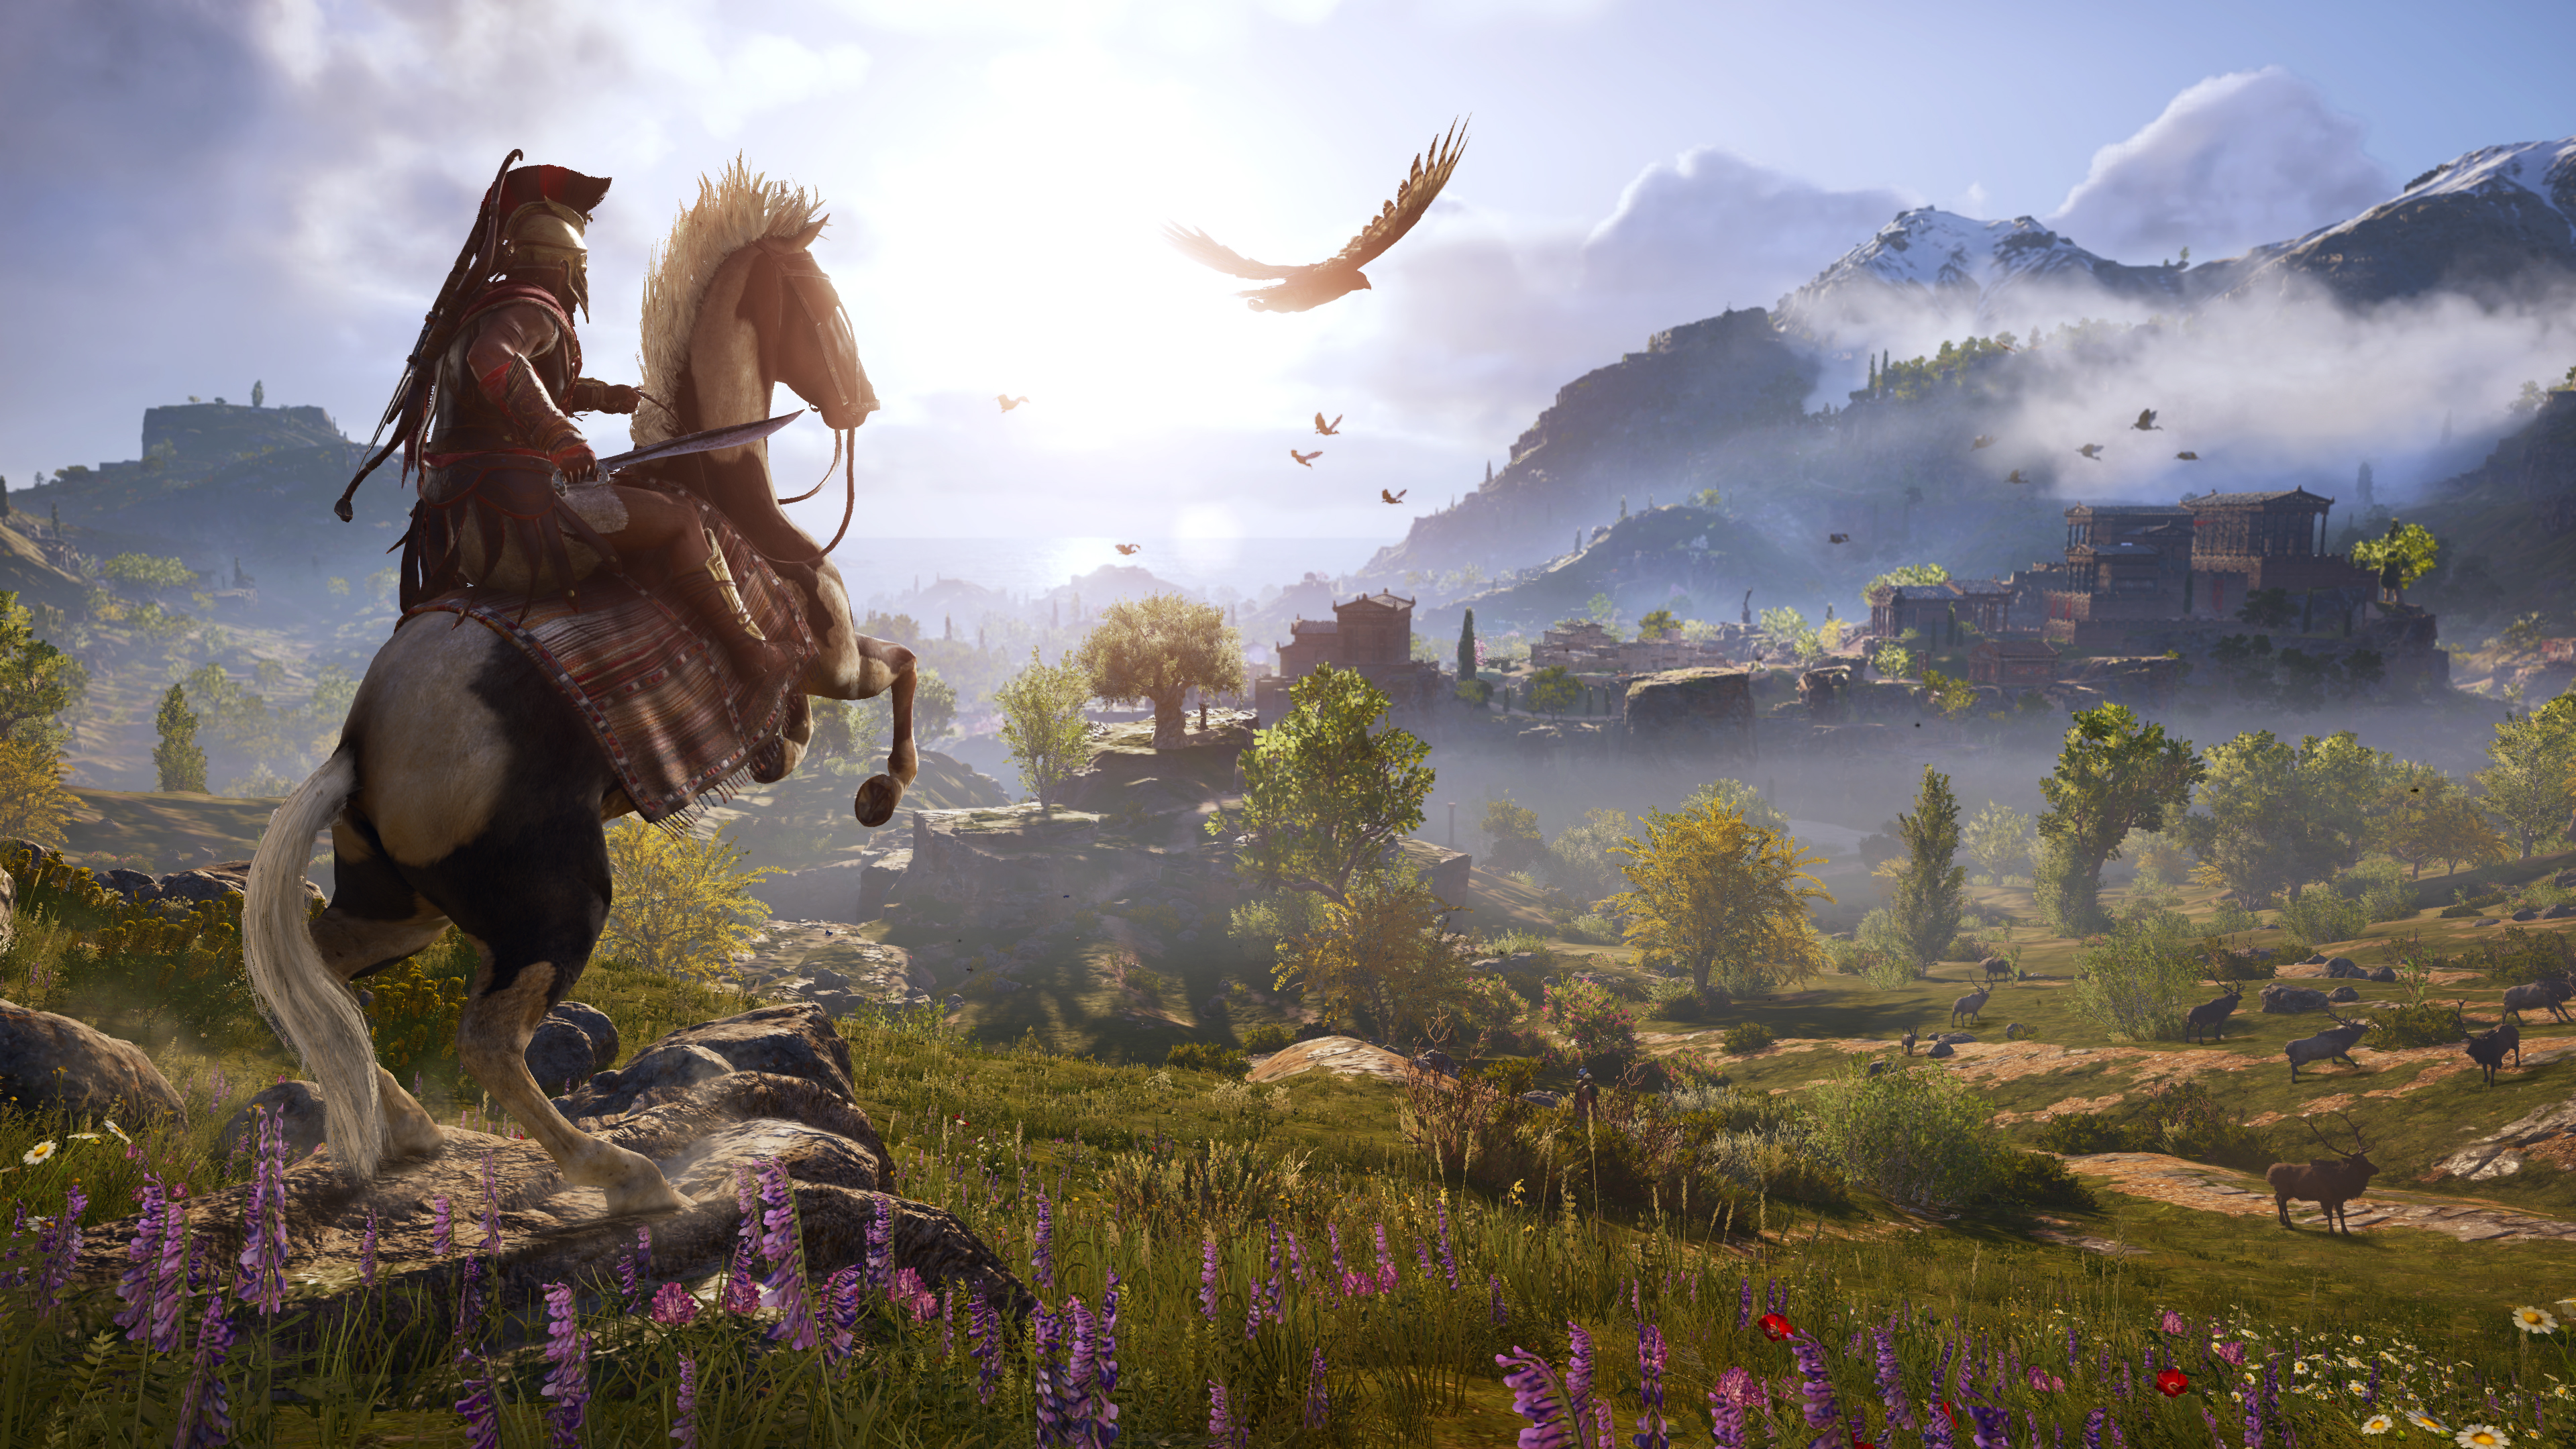 Assassin S Creed Odyssey Hands On Impressions From E3 2018 Rpg Site